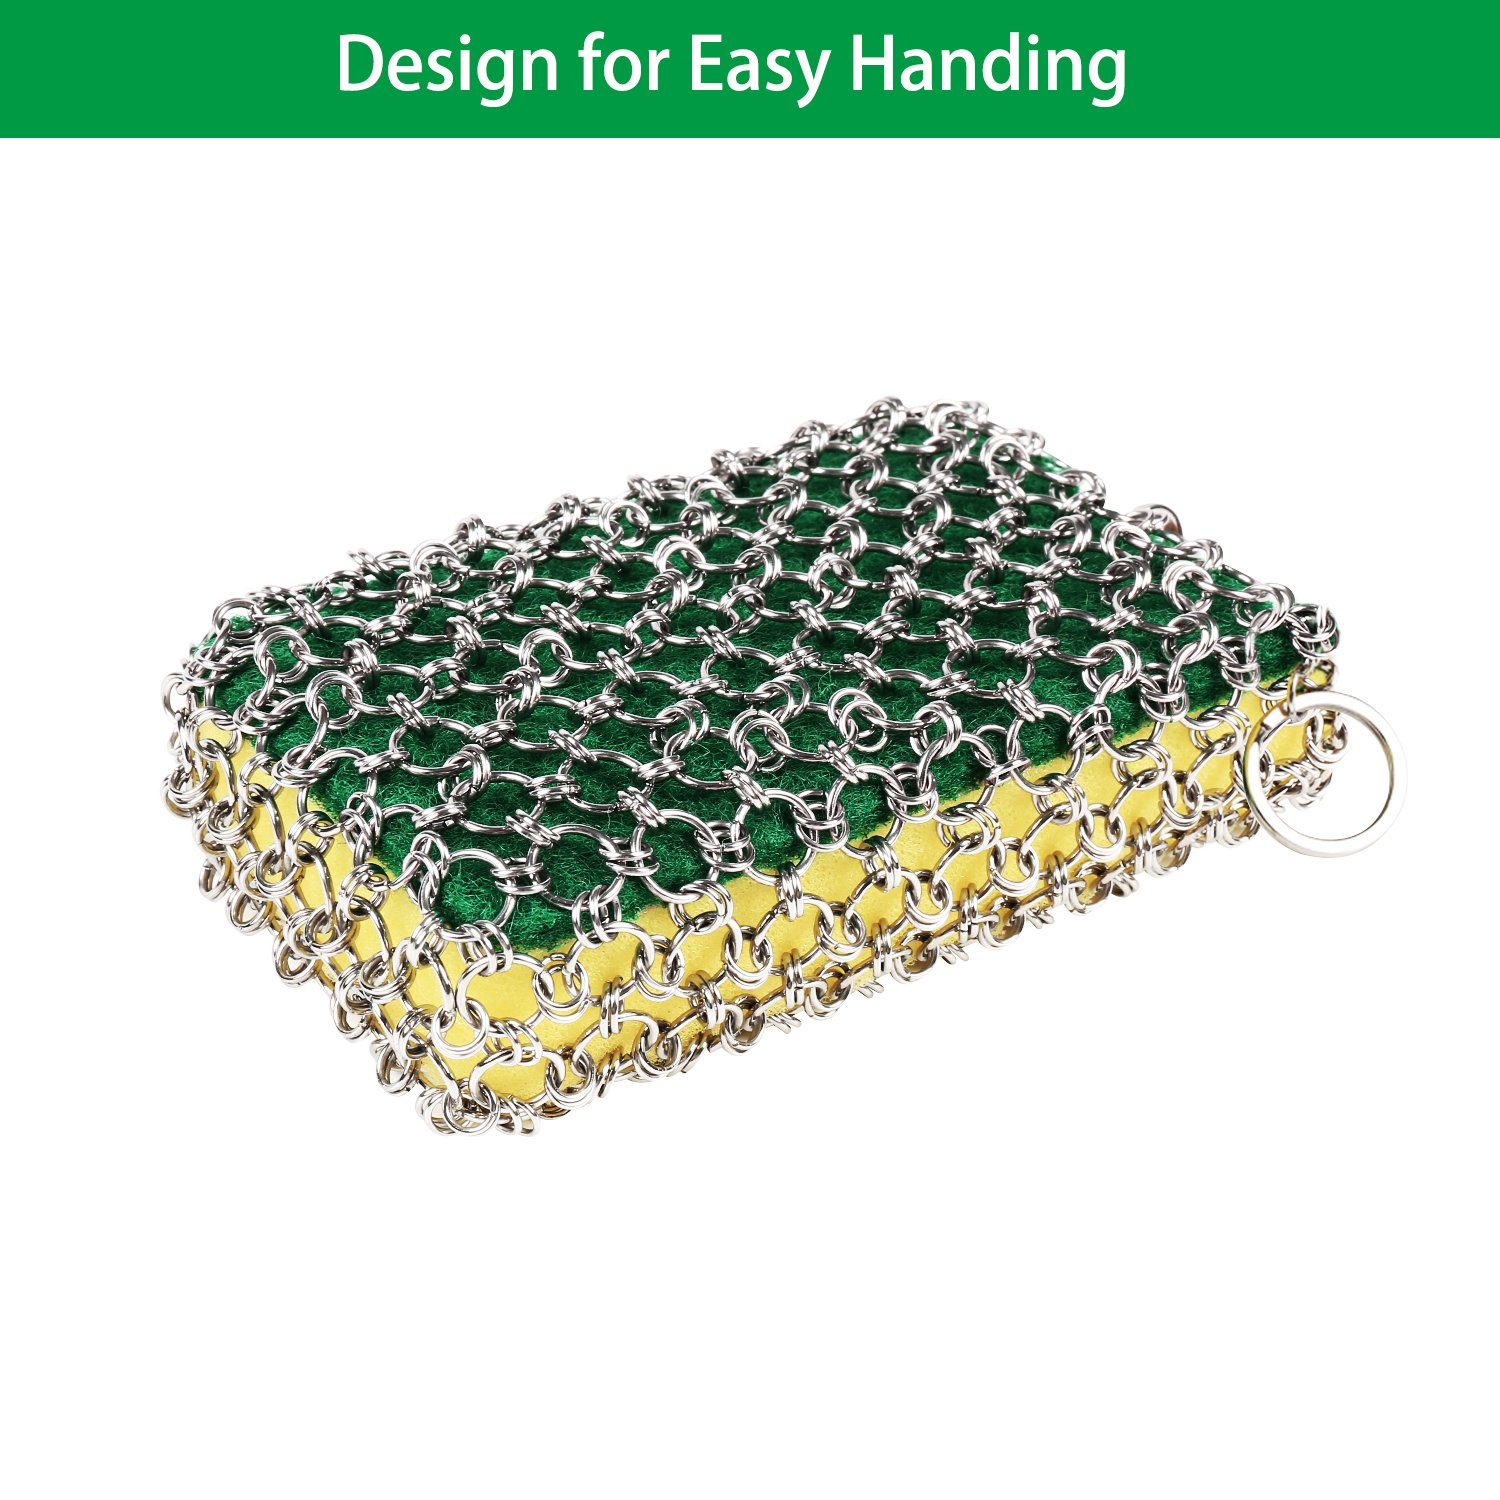 Cast Iron Cleaner, Stainless Steel Chainmail Scrubber for Cast Iron Pans, Cookware, Counters Grill Scraper, Oil-Free, Easy Handing, No Soap Required Cast Iron Skillet Cleaner for Home and Camping by Rayron